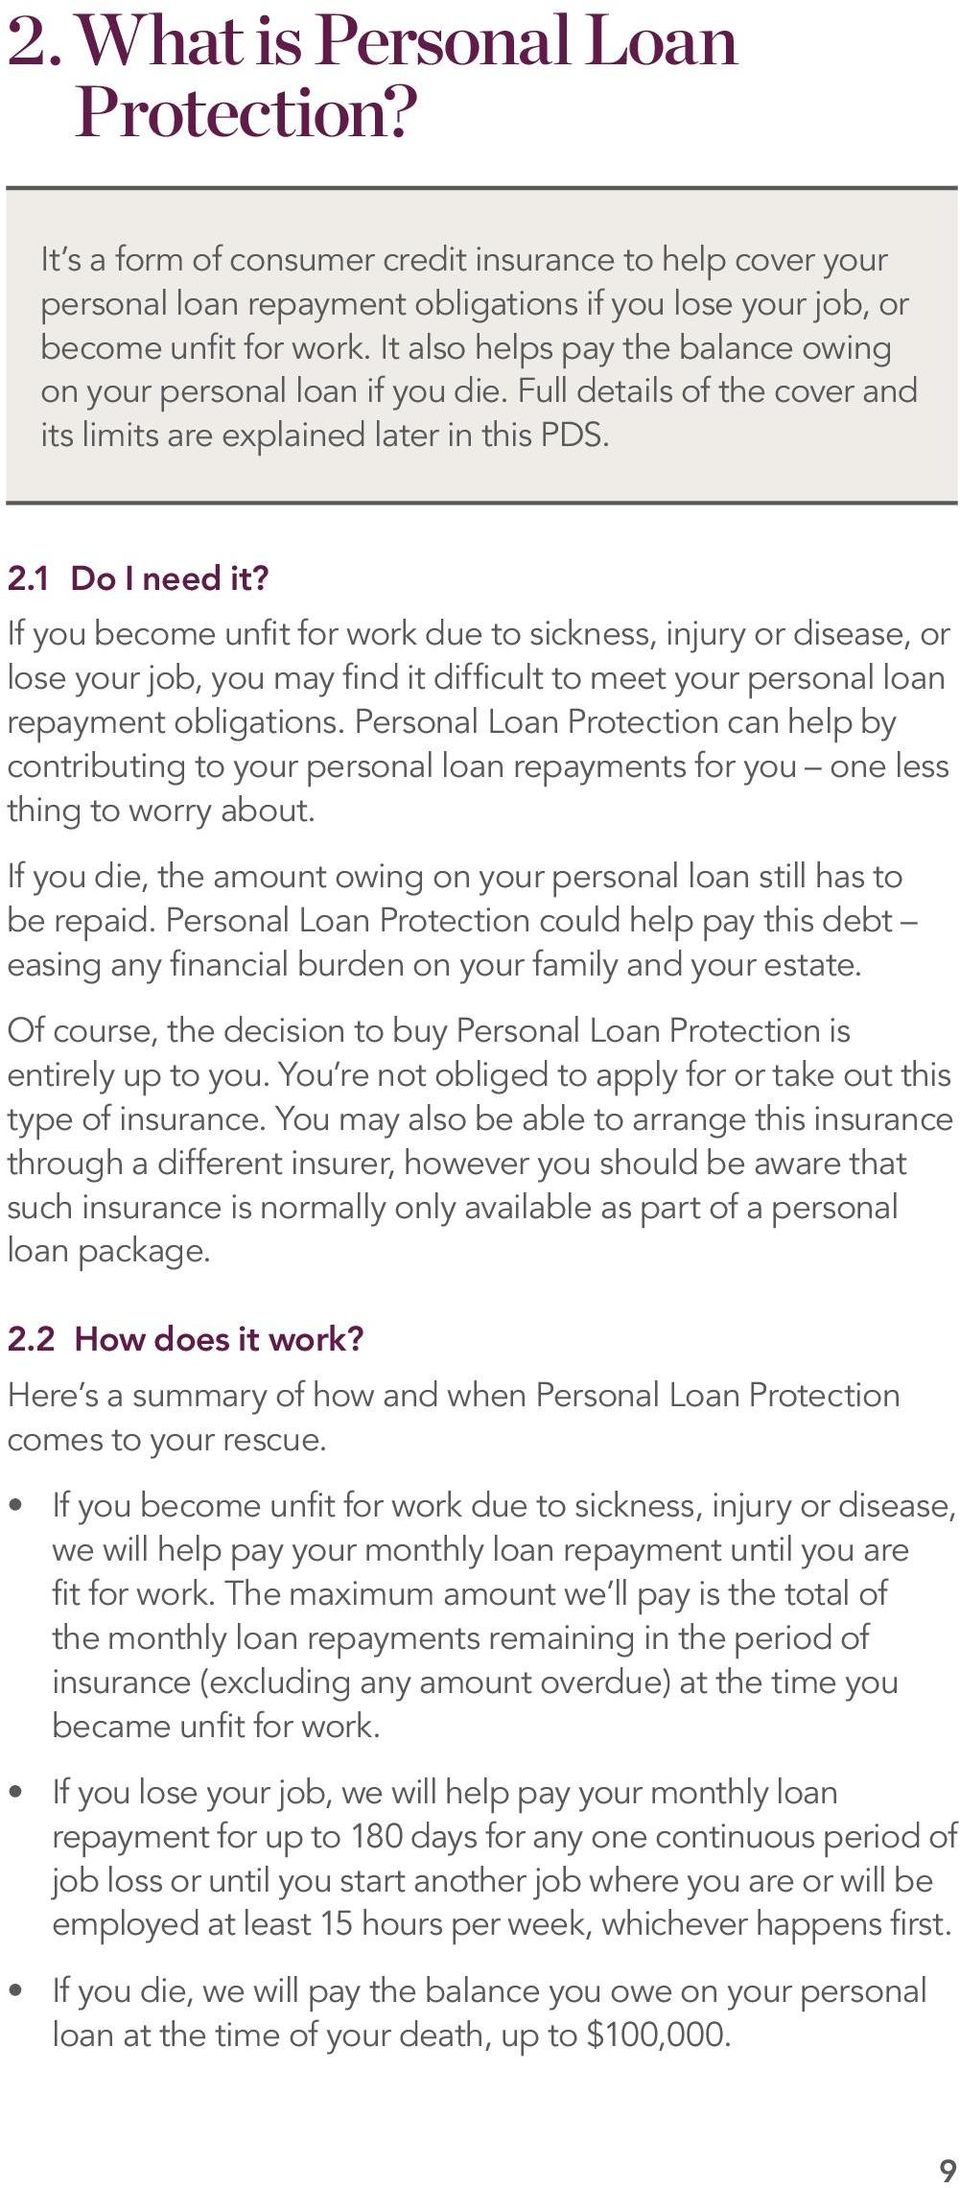 If you become unfit for work due to sickness, injury or disease, or lose your job, you may find it difficult to meet your personal loan repayment obligations.